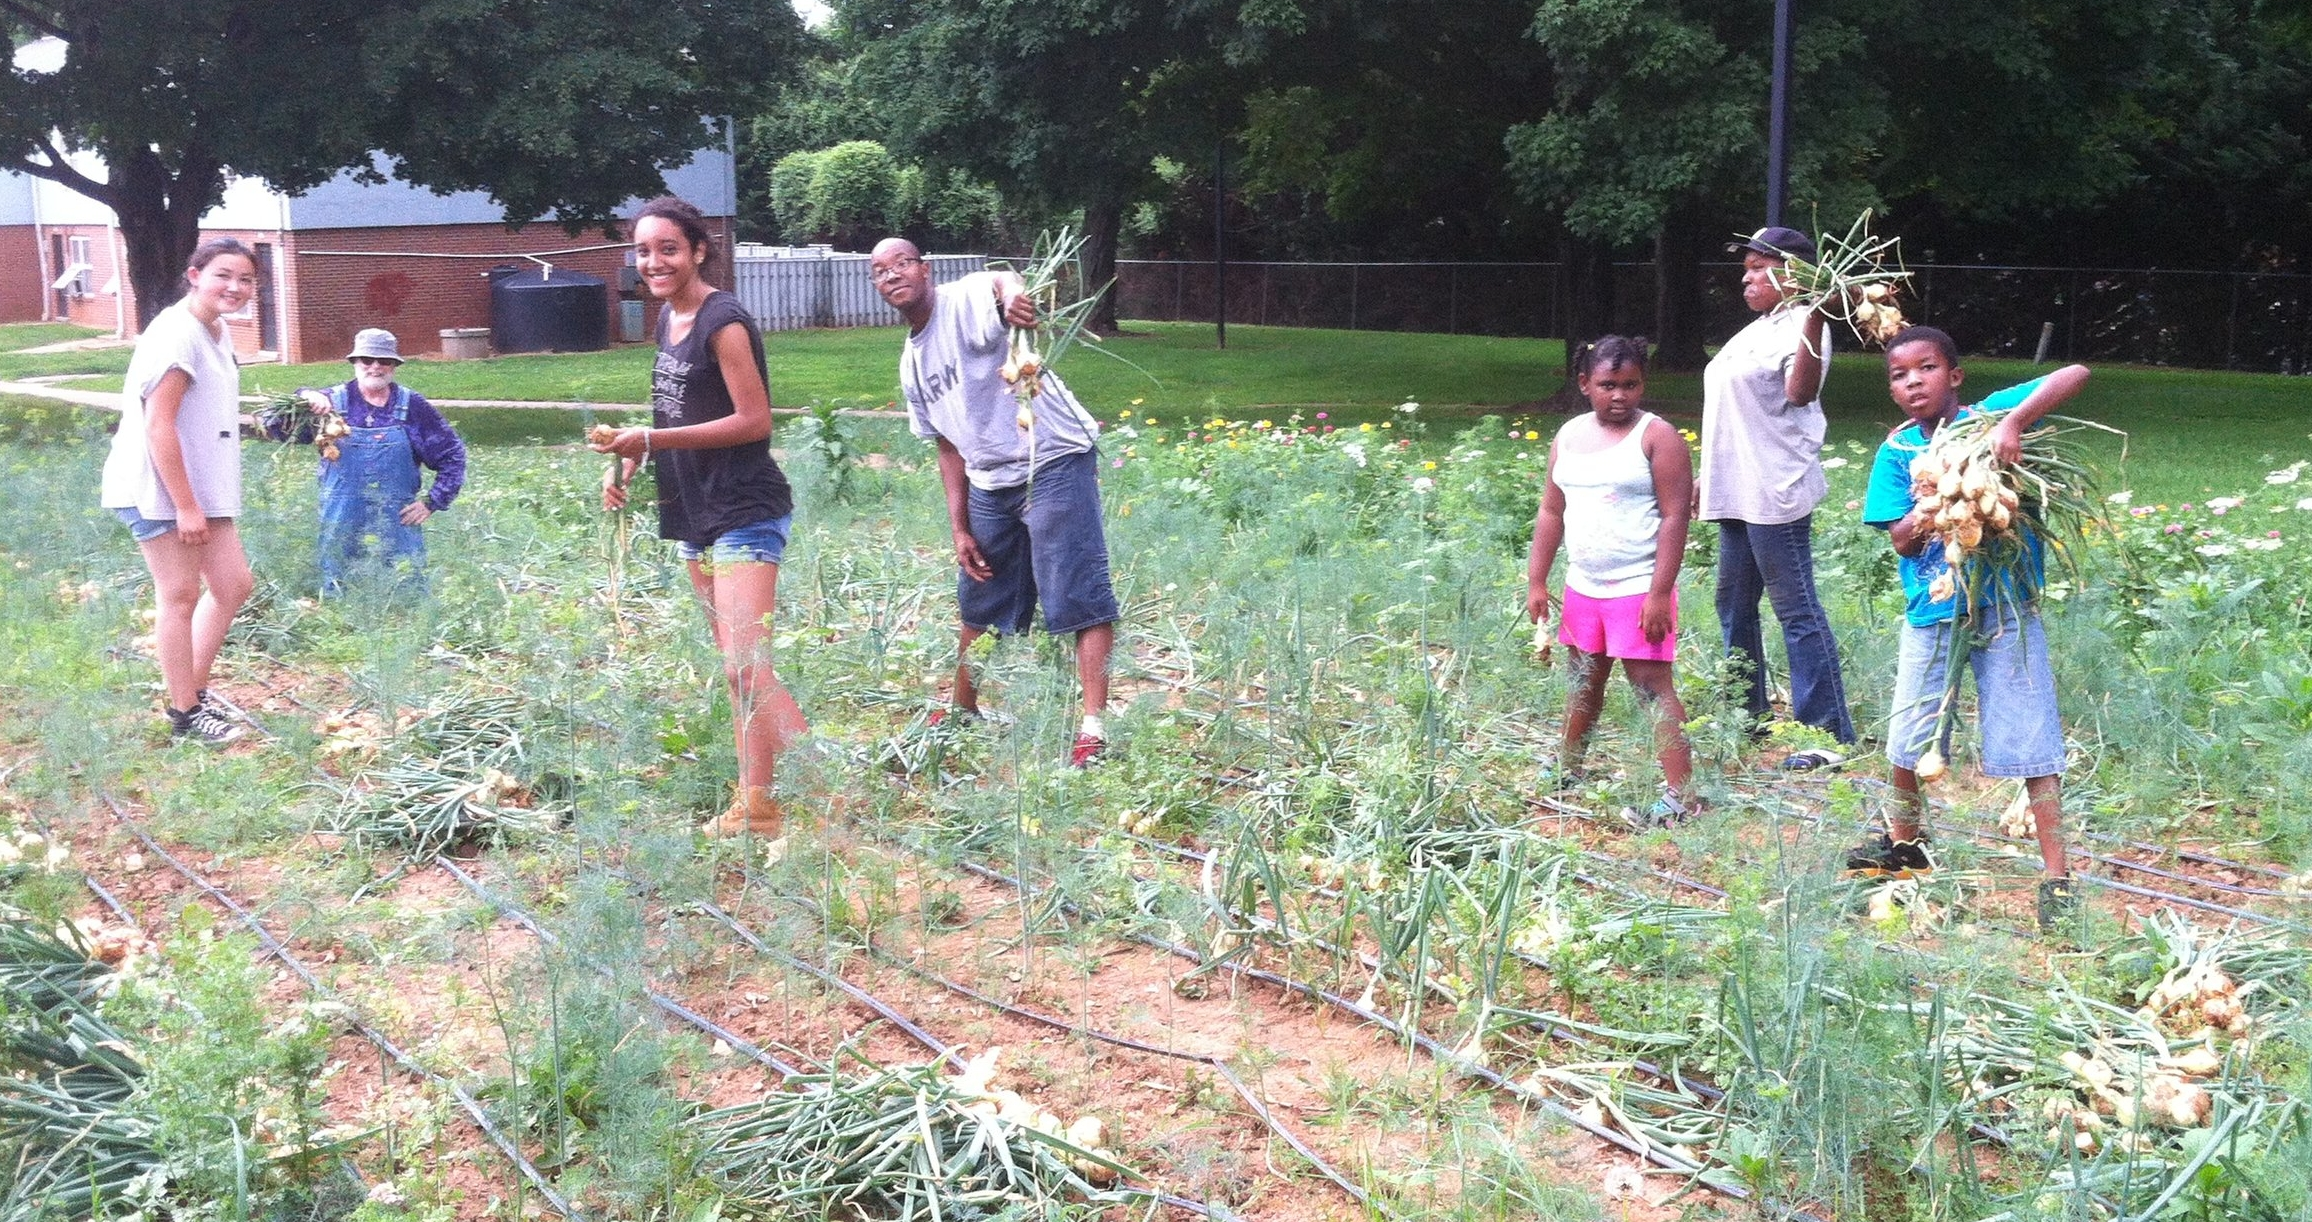 Volunteers harvest onions in the 6th Street garden - June 2015